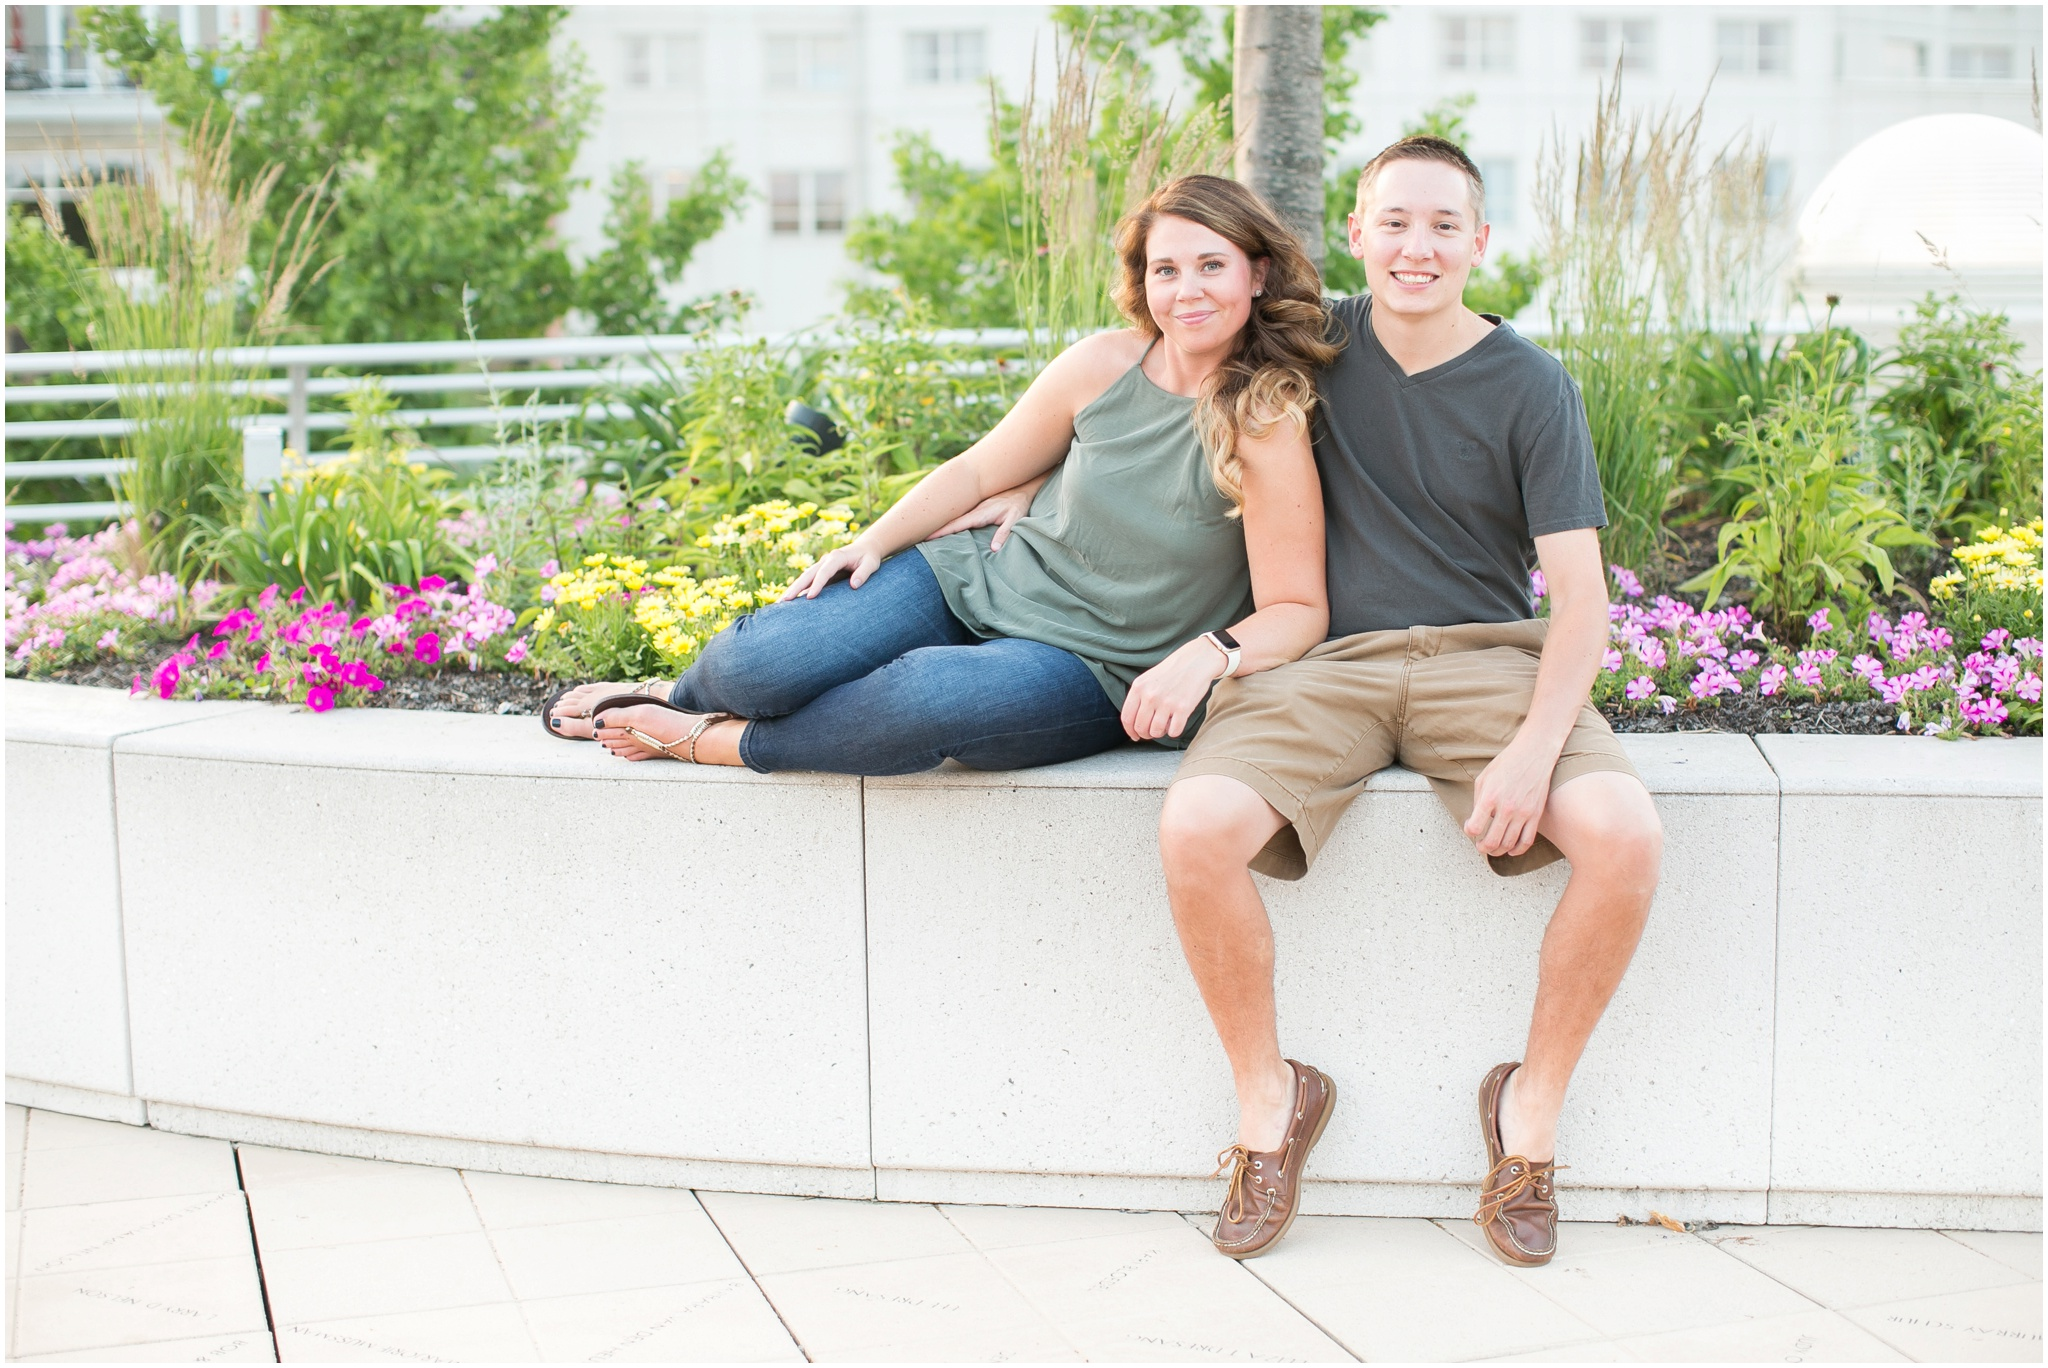 Downtown_Madison_Wisconsin_Engagement_Session_Waterfront_Monona_Terrace_0480.jpg